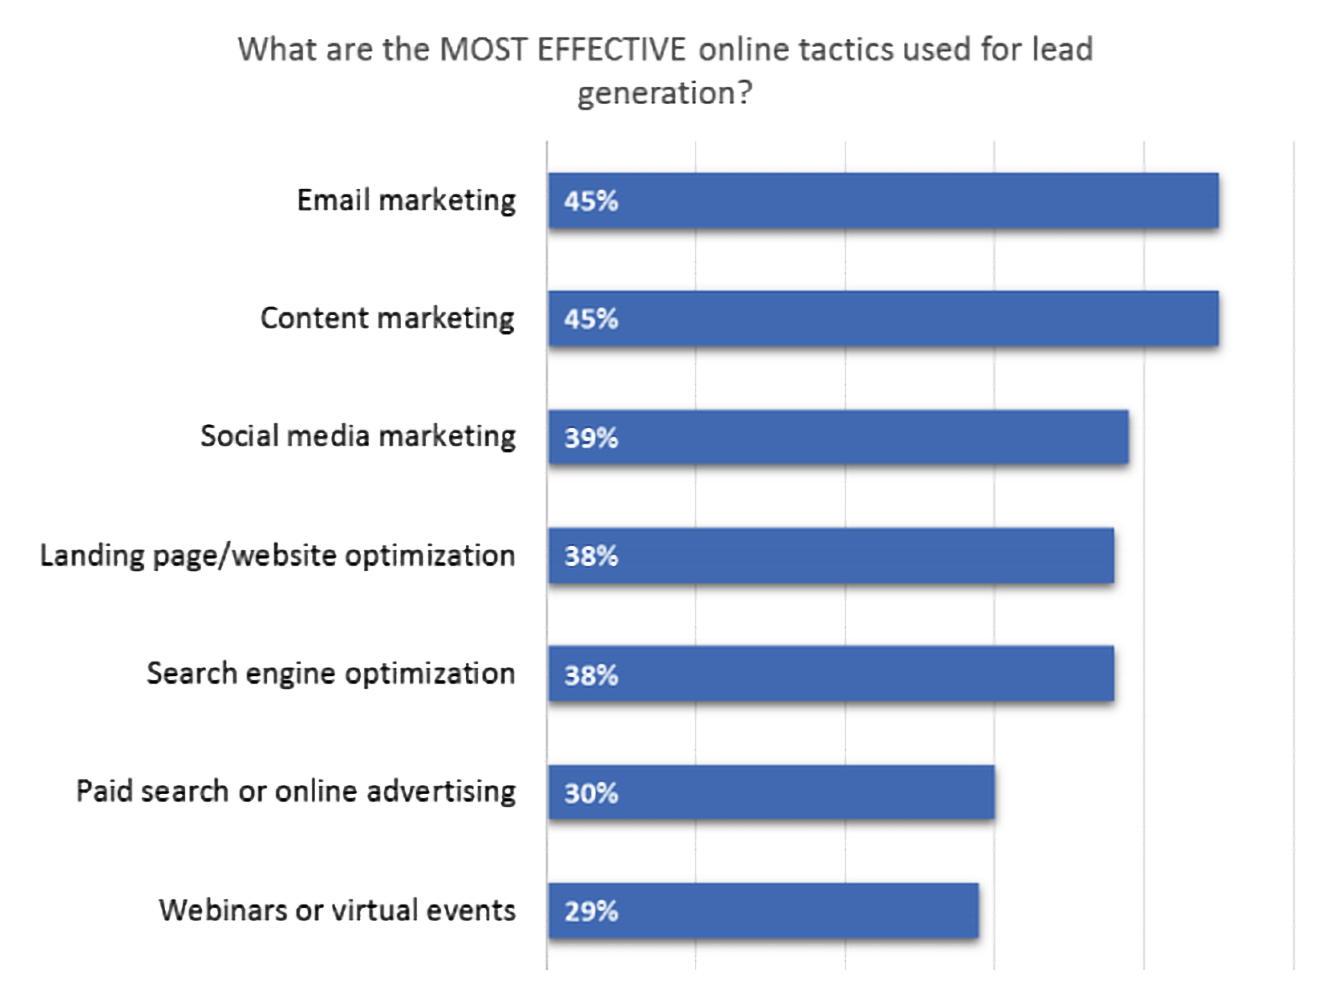 The MOST EFFECTIVE online tactics used for lead generation